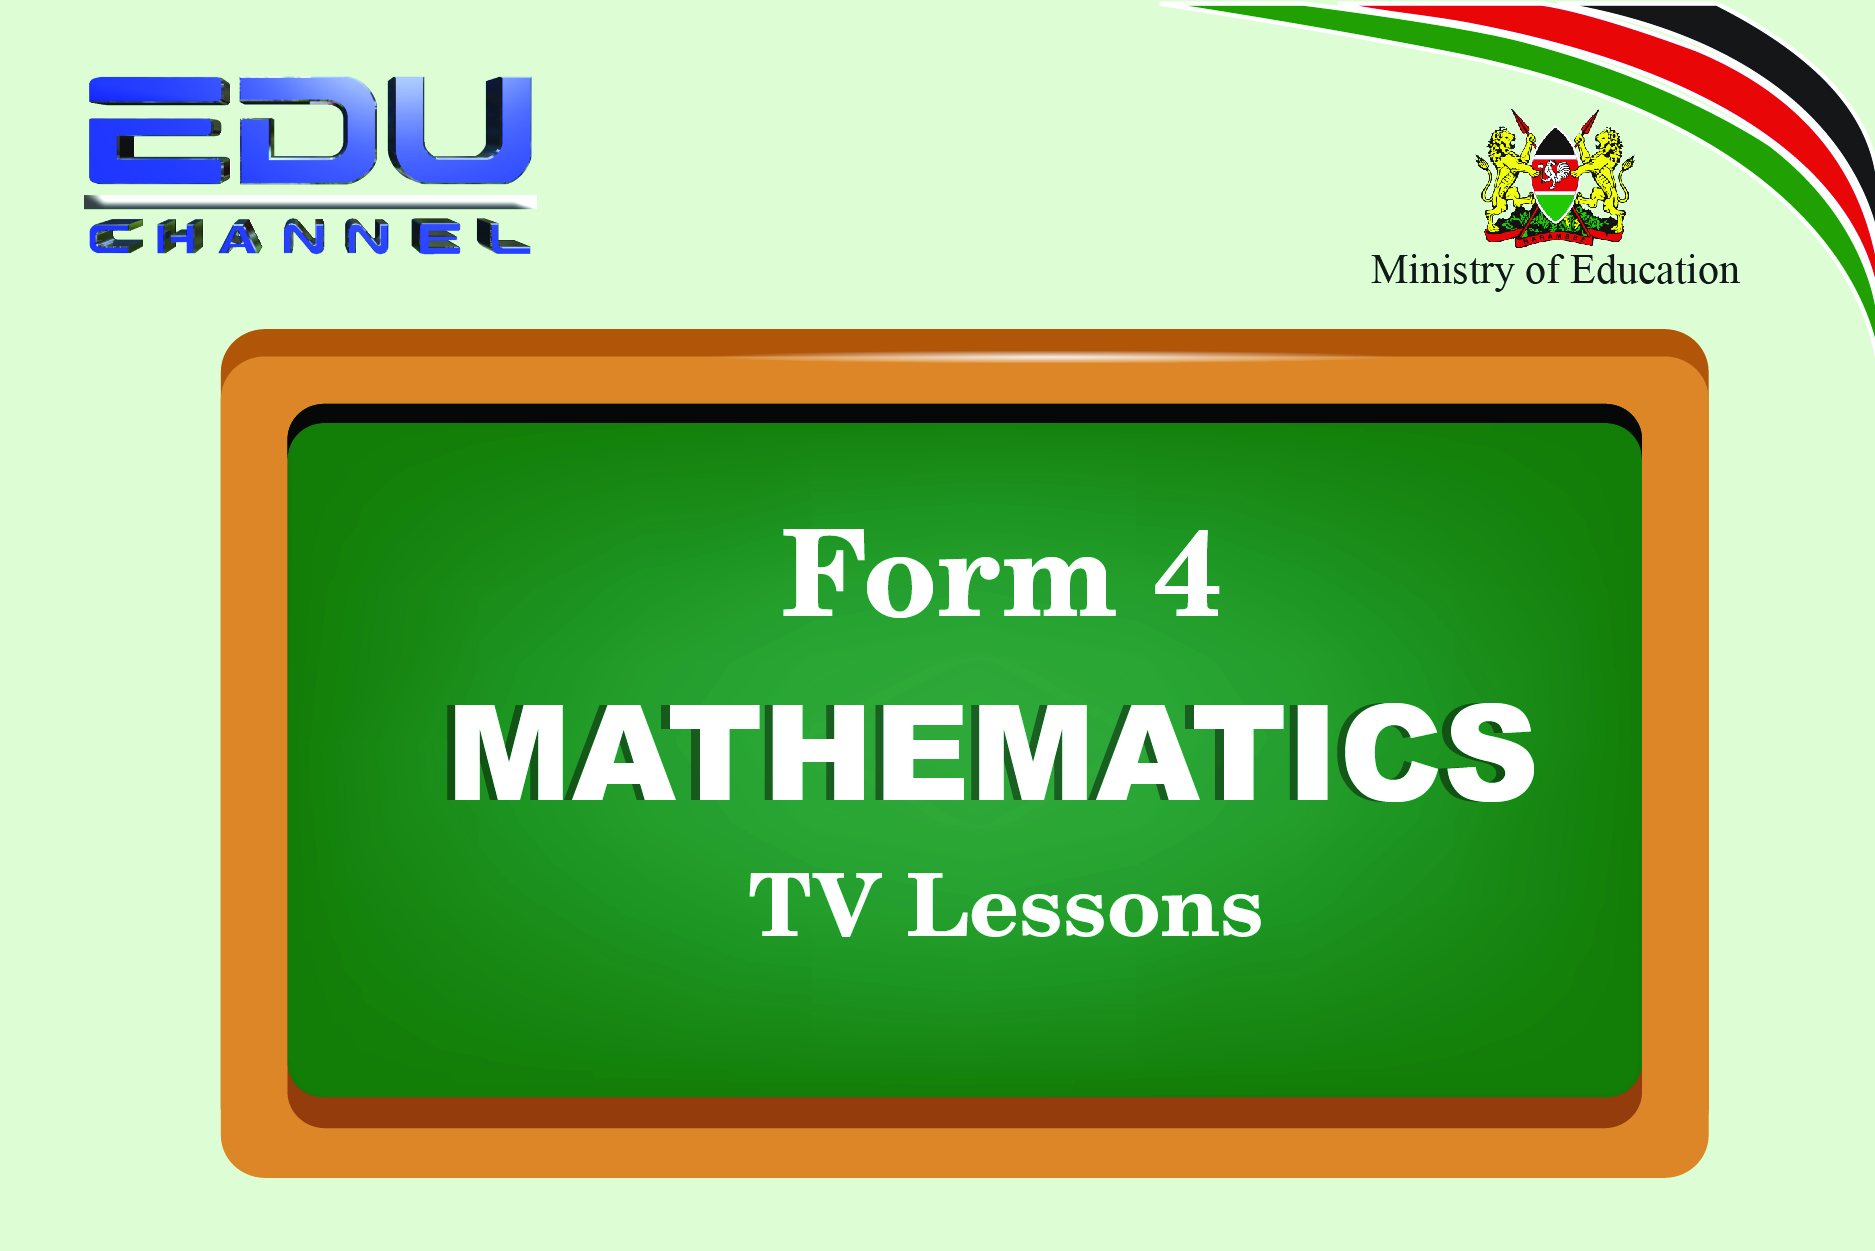 Form 4 Mathematics Lesson 10: Linear Programming - Forming and graphing linear Inequlities